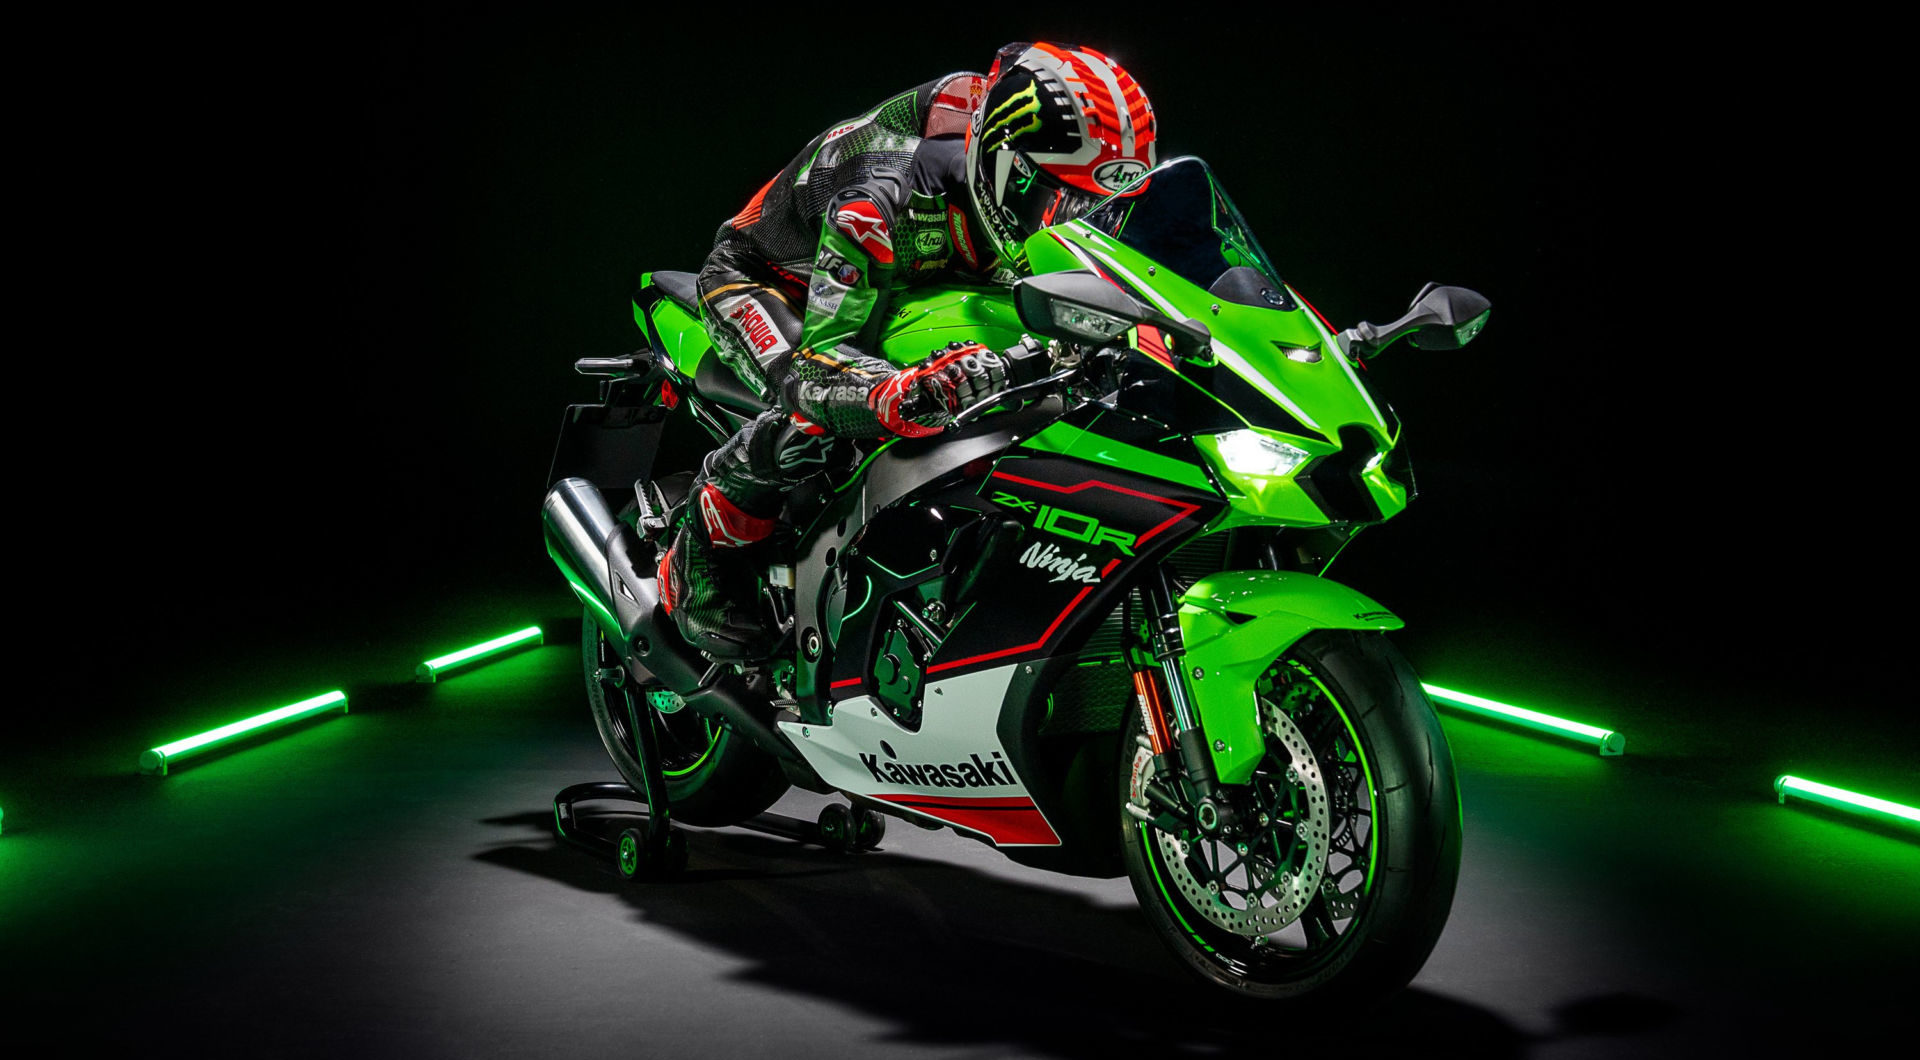 A view of a rider trying out a 2021 model of a Kawasaki ZX-10R